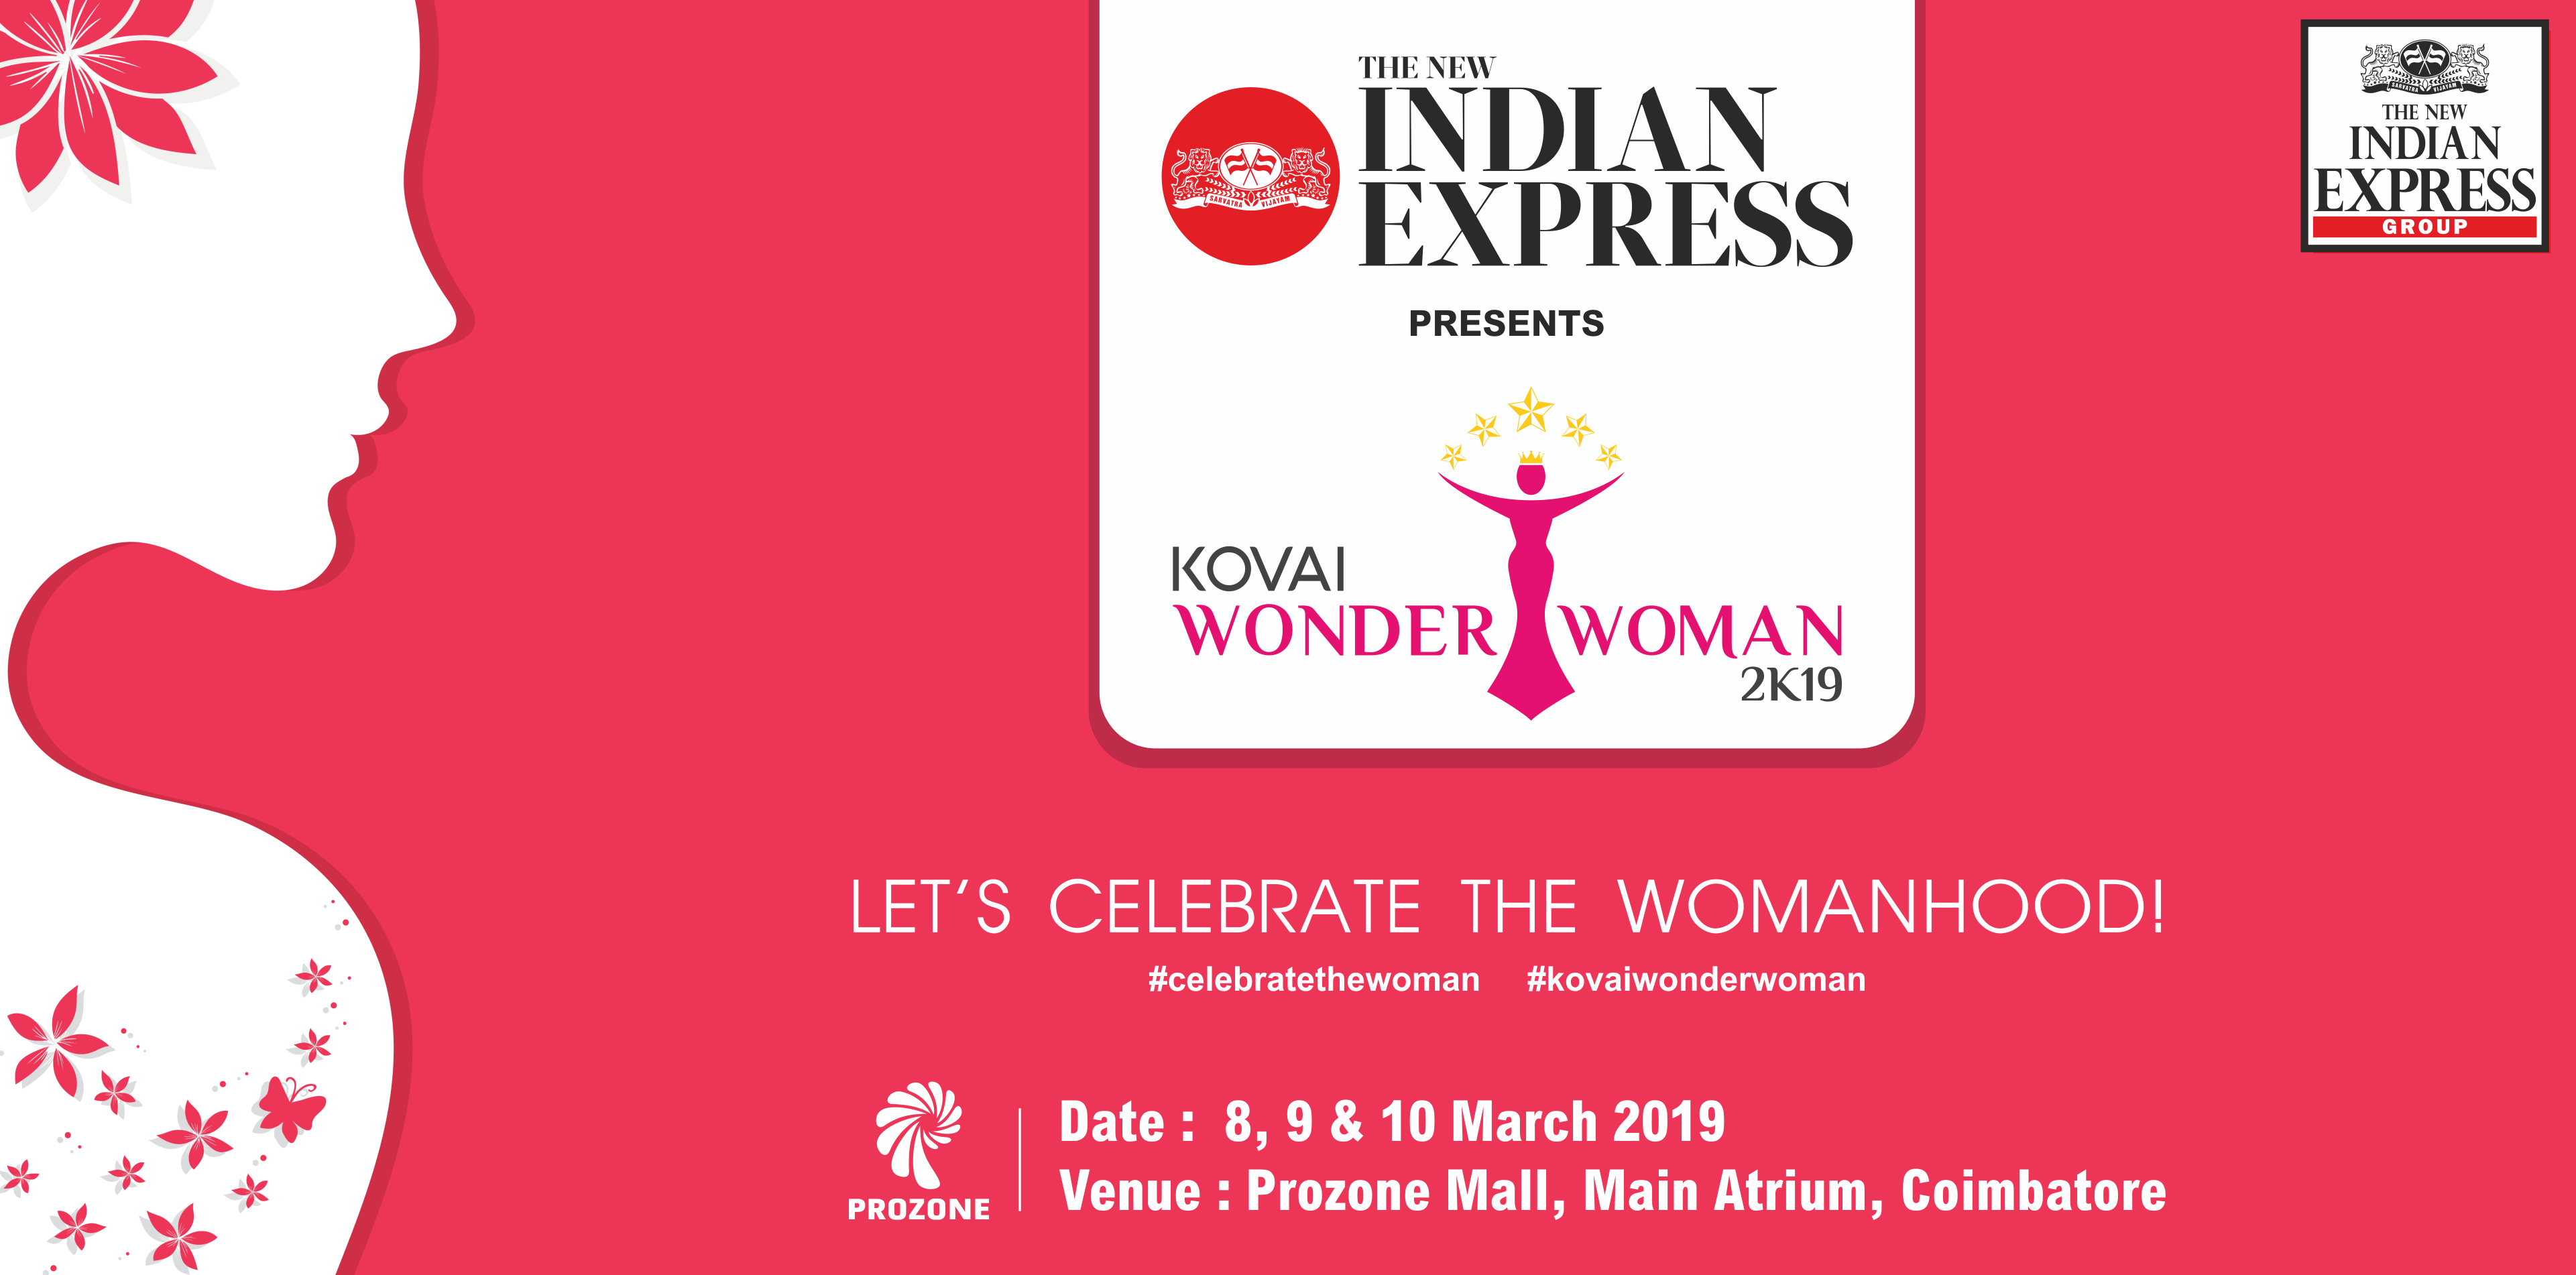 WONDER WOMEN'S EXPO 2K19 - PROZONE MALL COIMBATORE